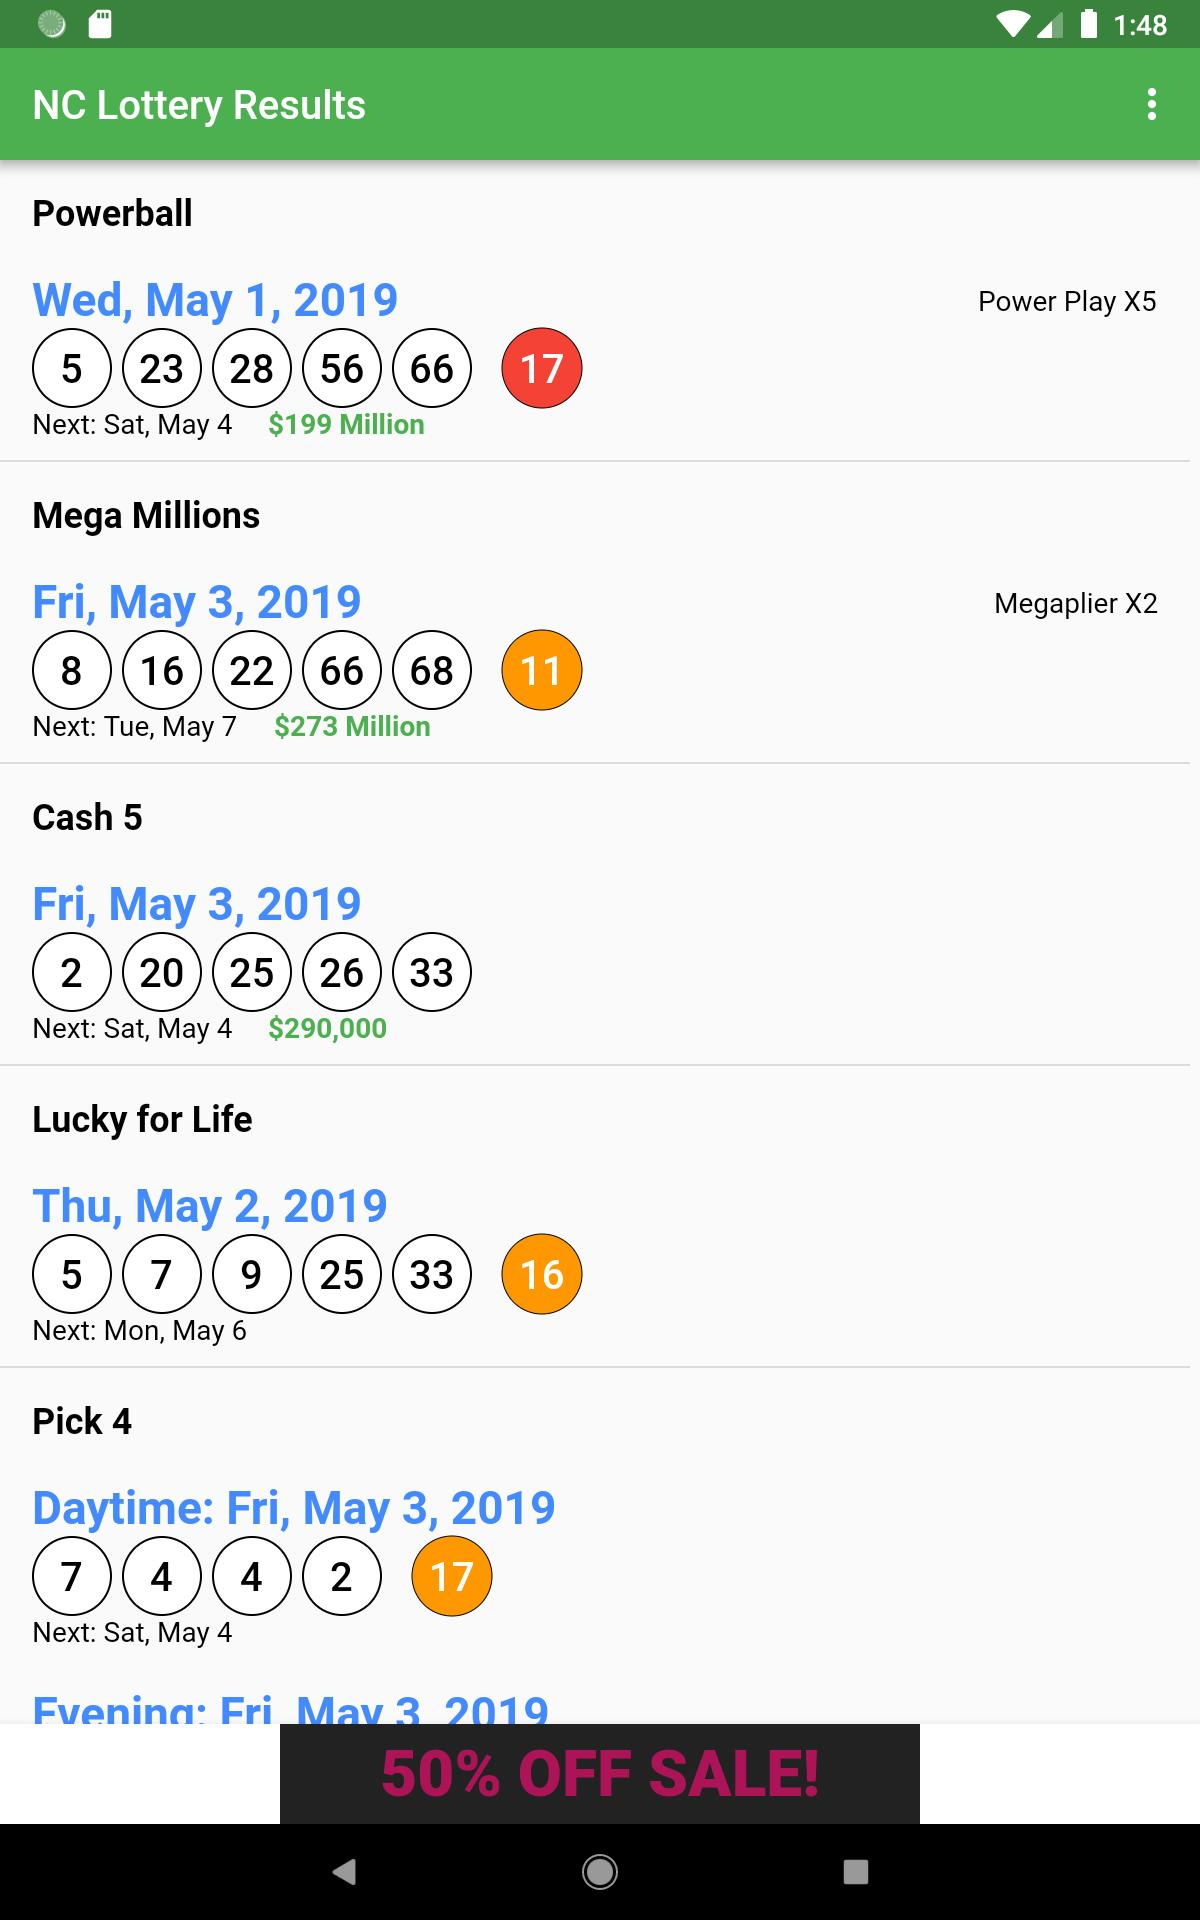 NC Lottery Results for Android - APK Download